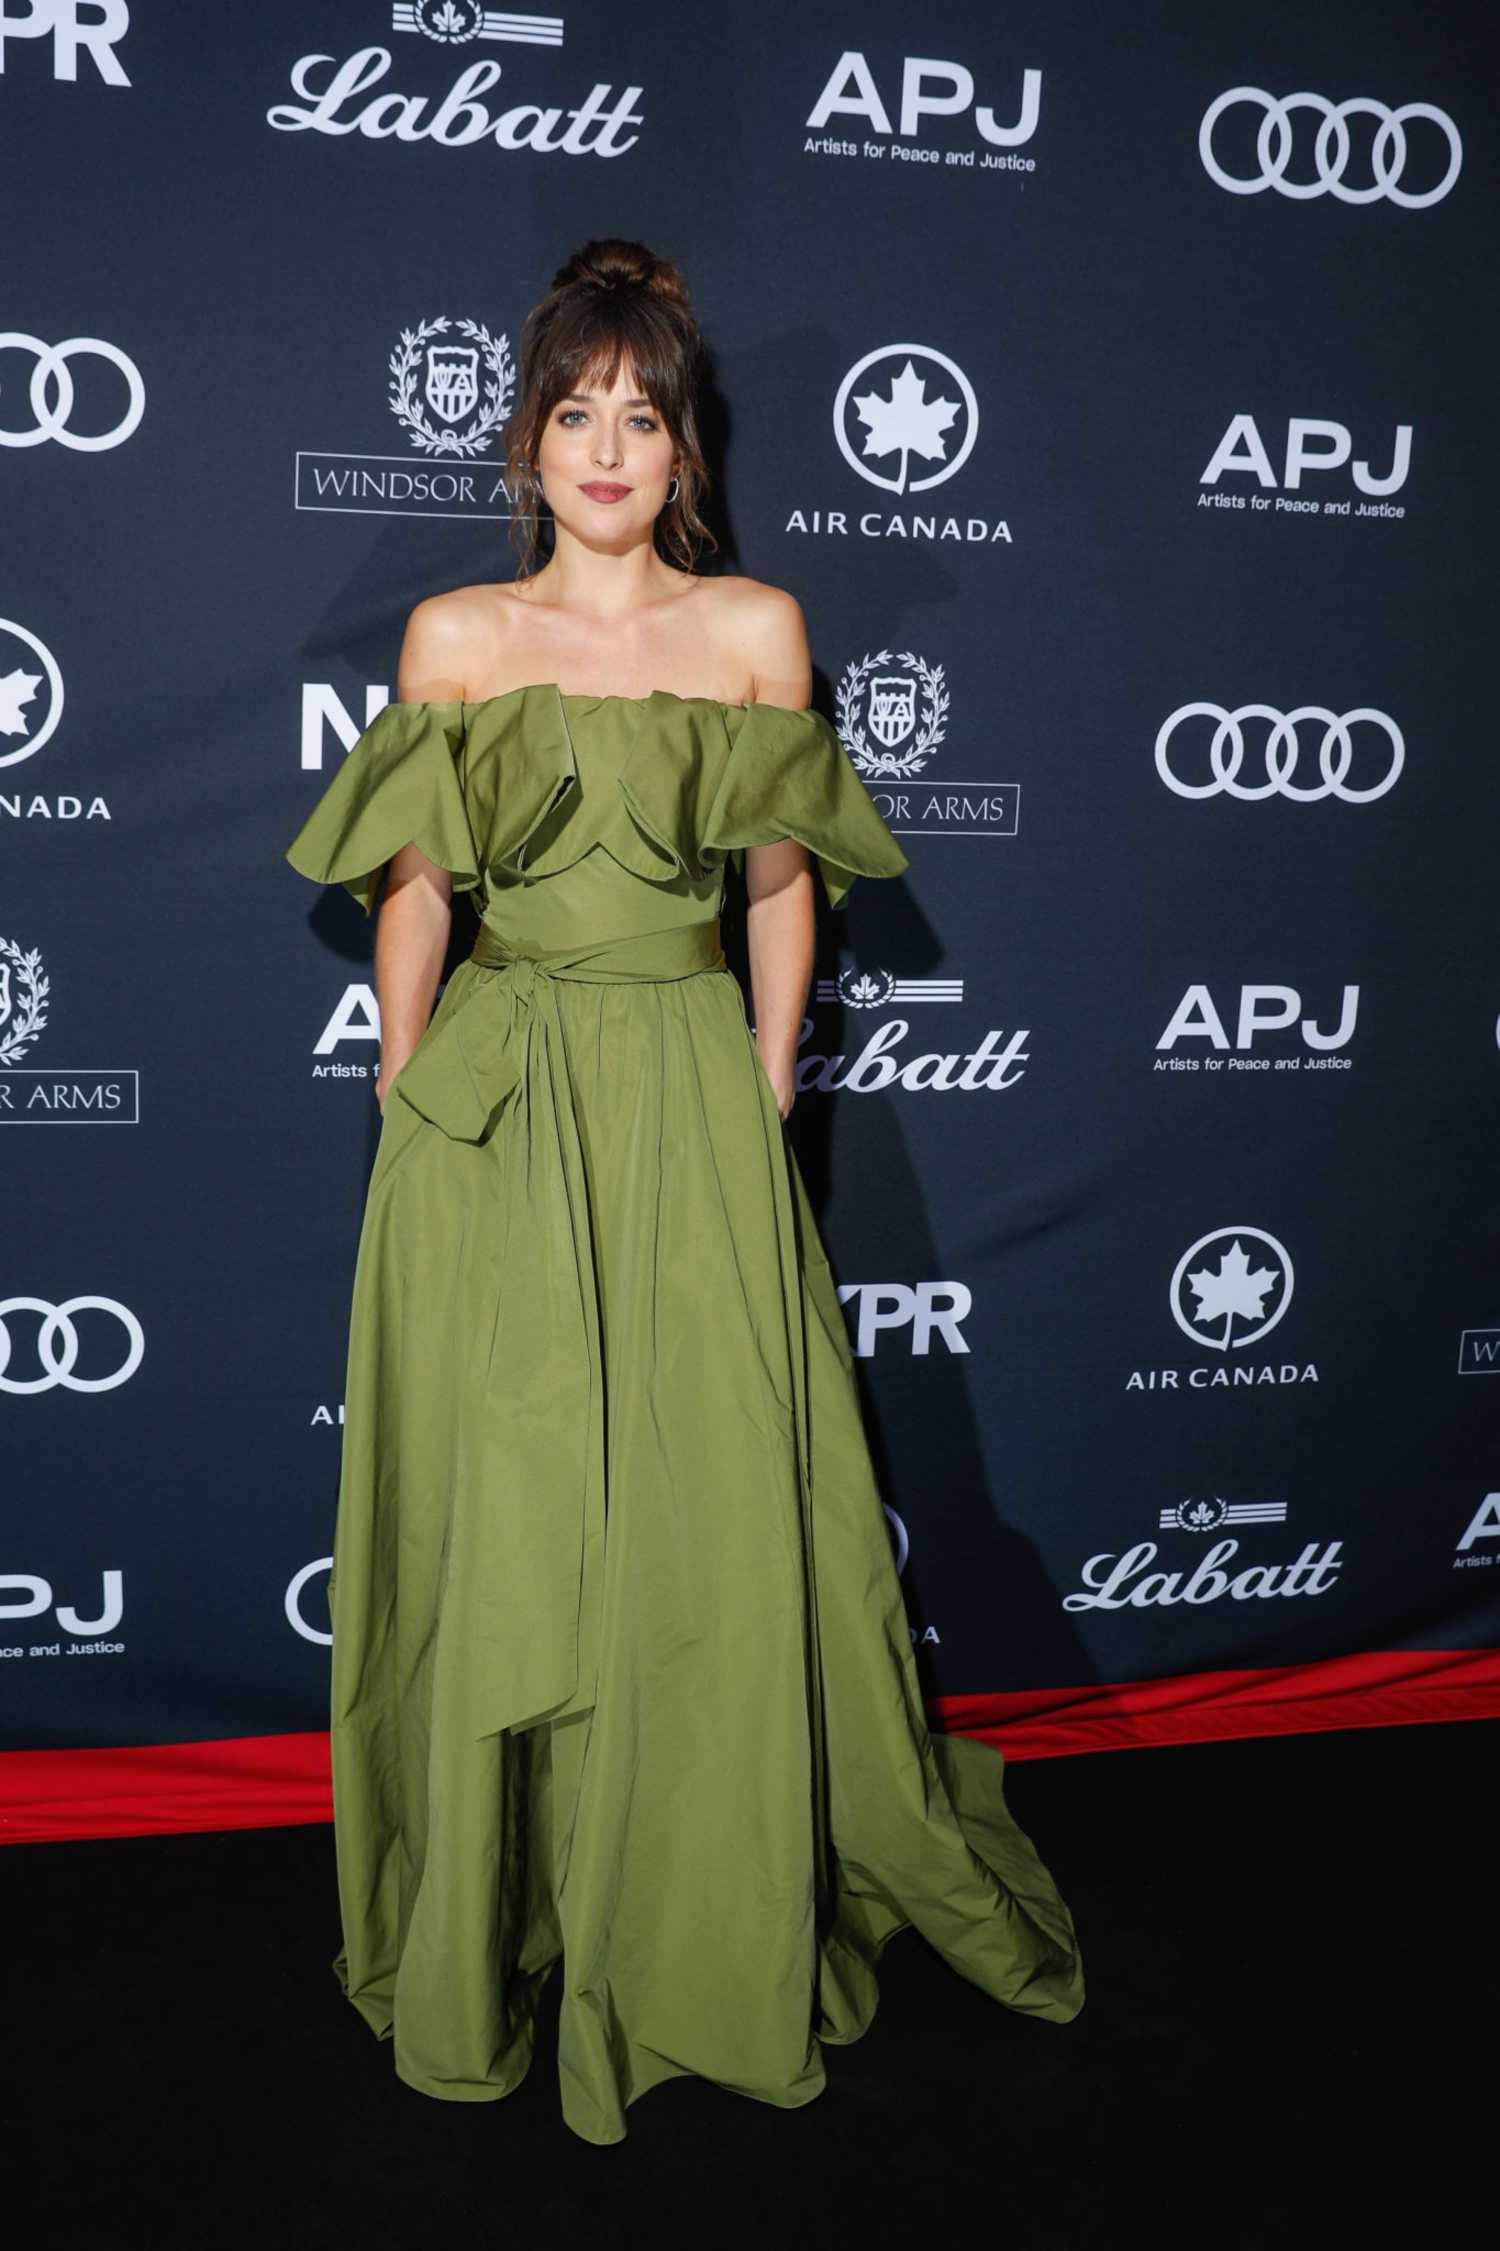 Dakota Johnson Attends Artist For Peace And Justice Festival Gala During The Toronto International Film Festival in Toronto 09/07/2019